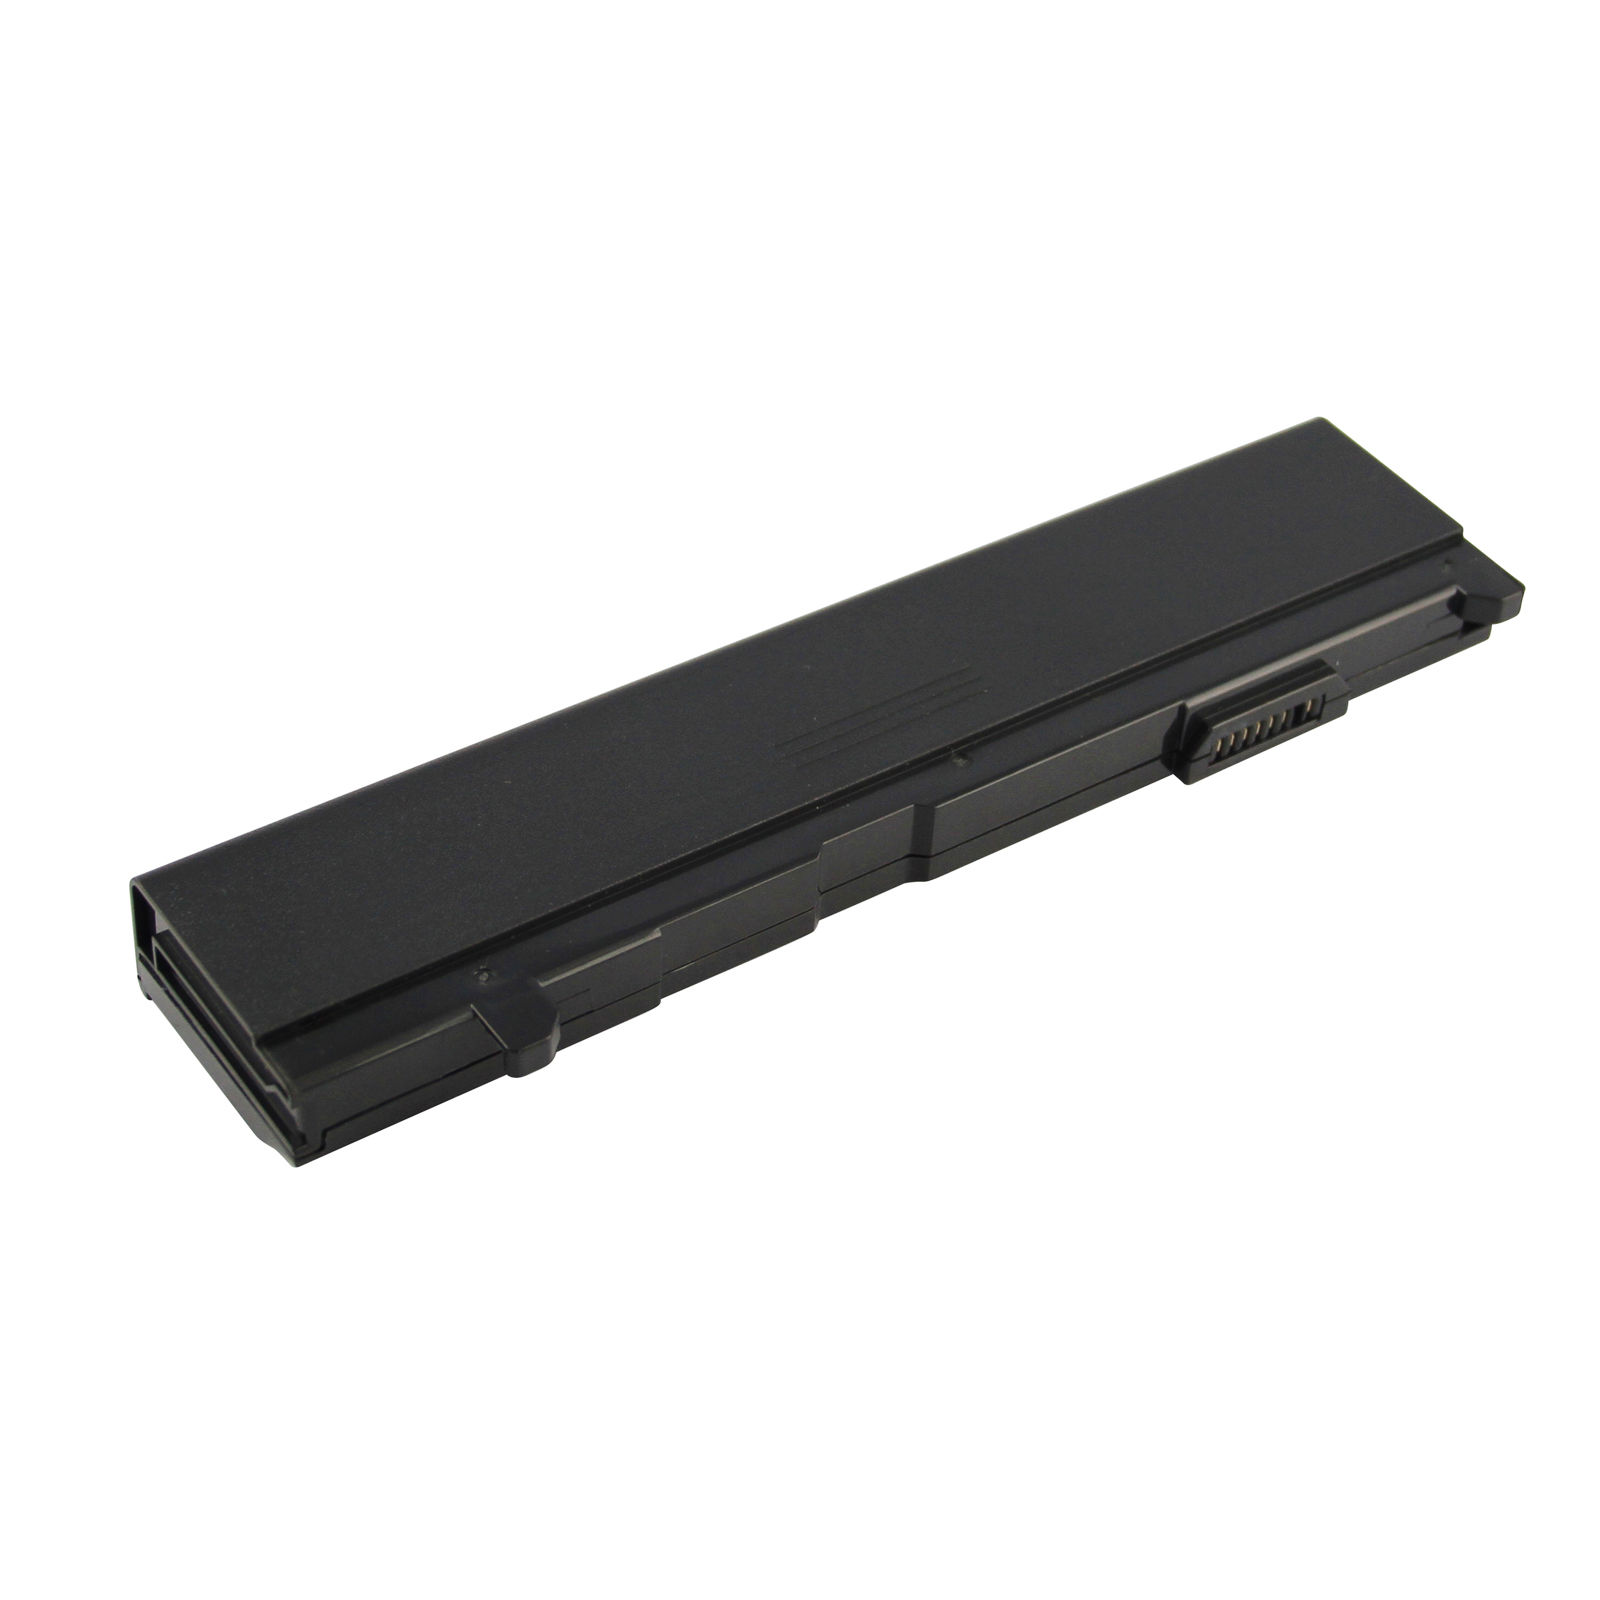 Replacement Toshiba Satellite A105-S4034 Battery